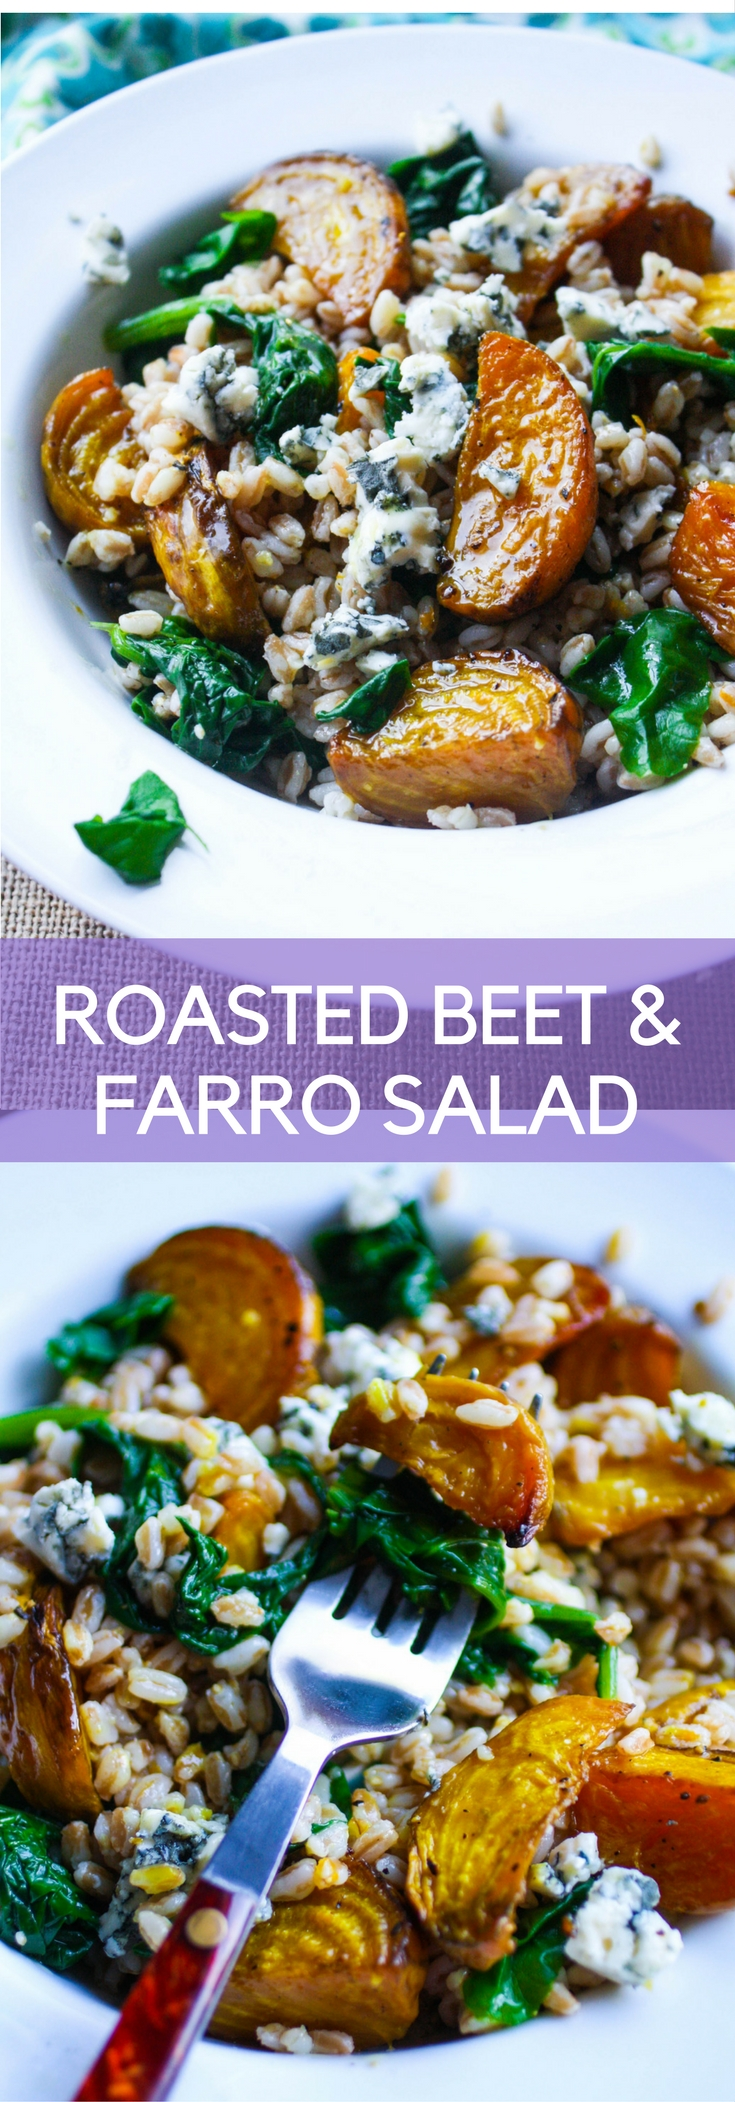 Roasted Beet & Farro Salad is a treat during the winter months. This salad will shine with roasted beets and hearty farro.